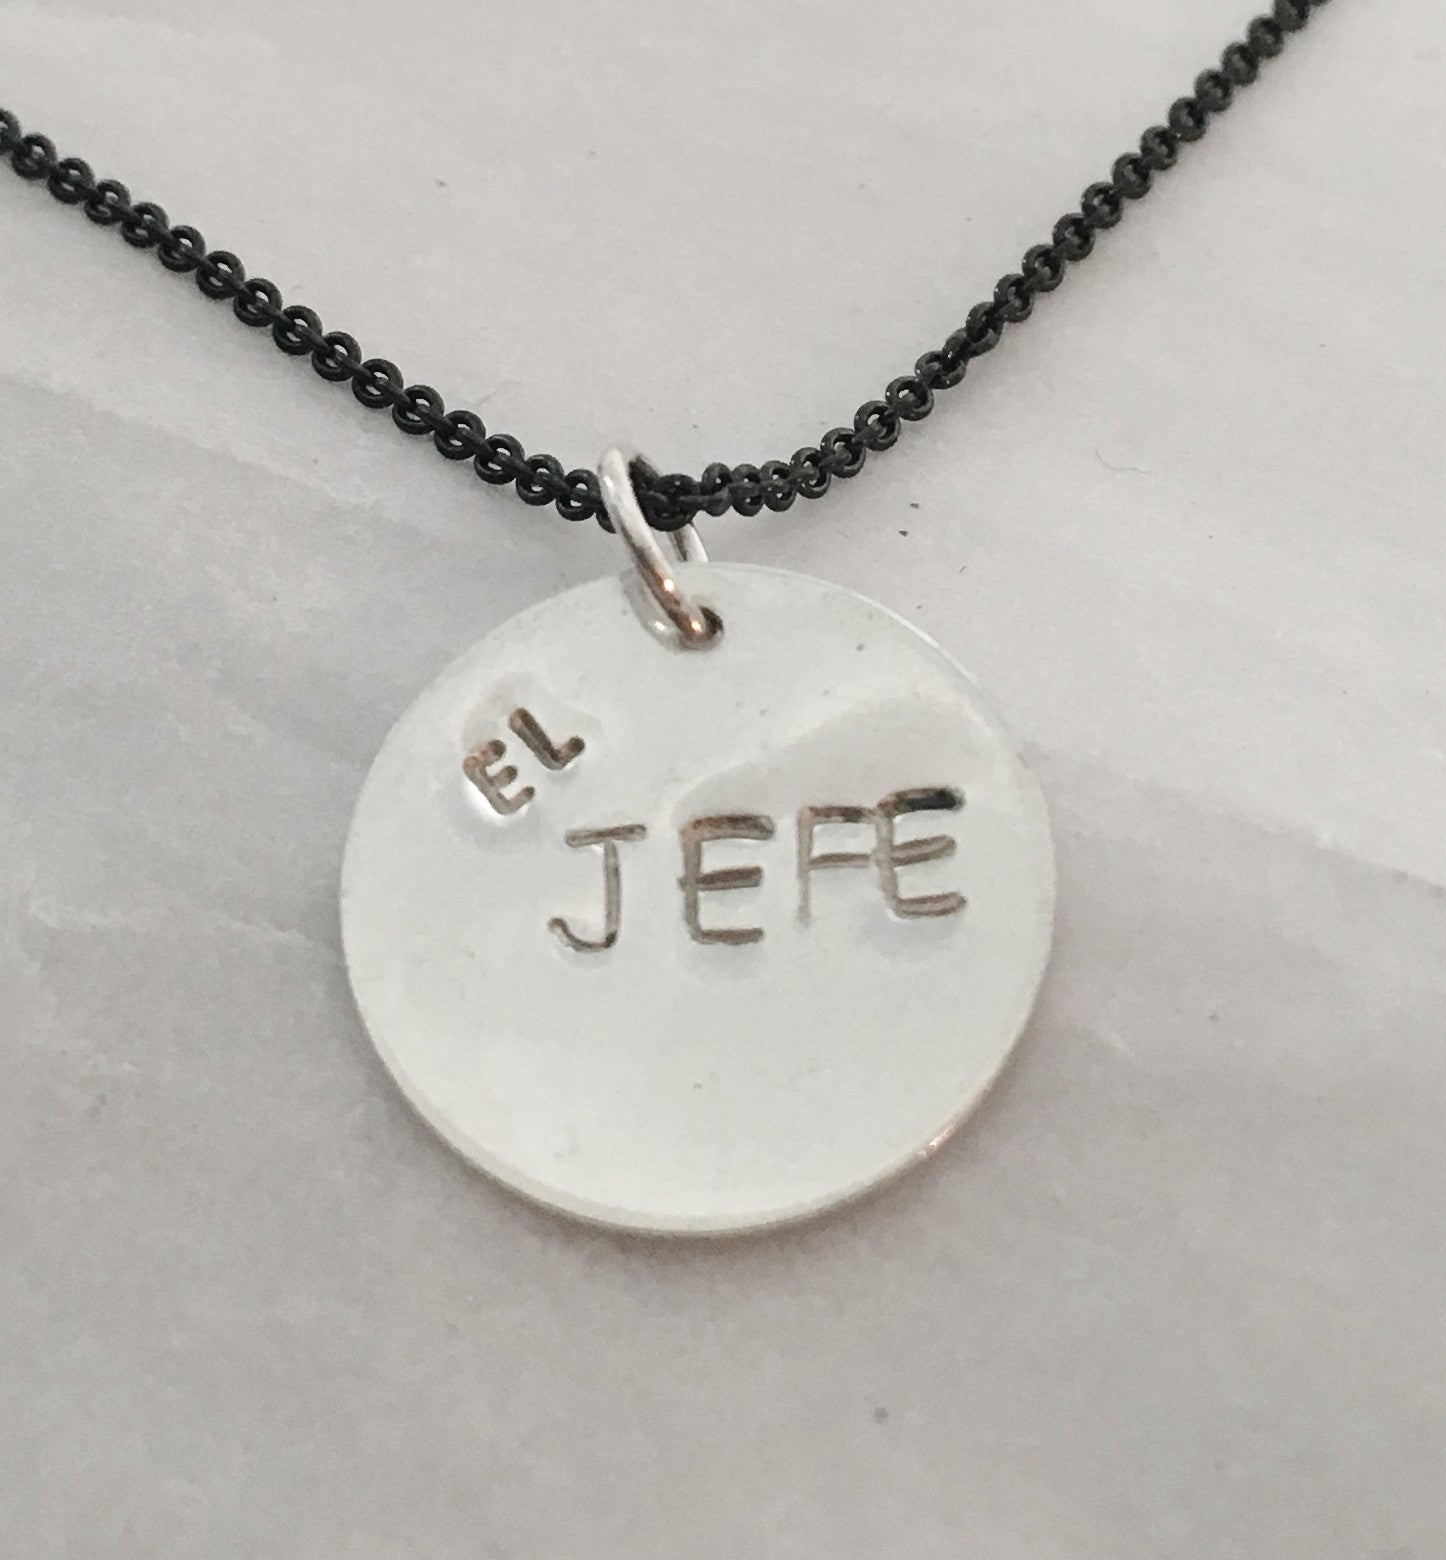 Handstamped El Jefe Pendant Necklace